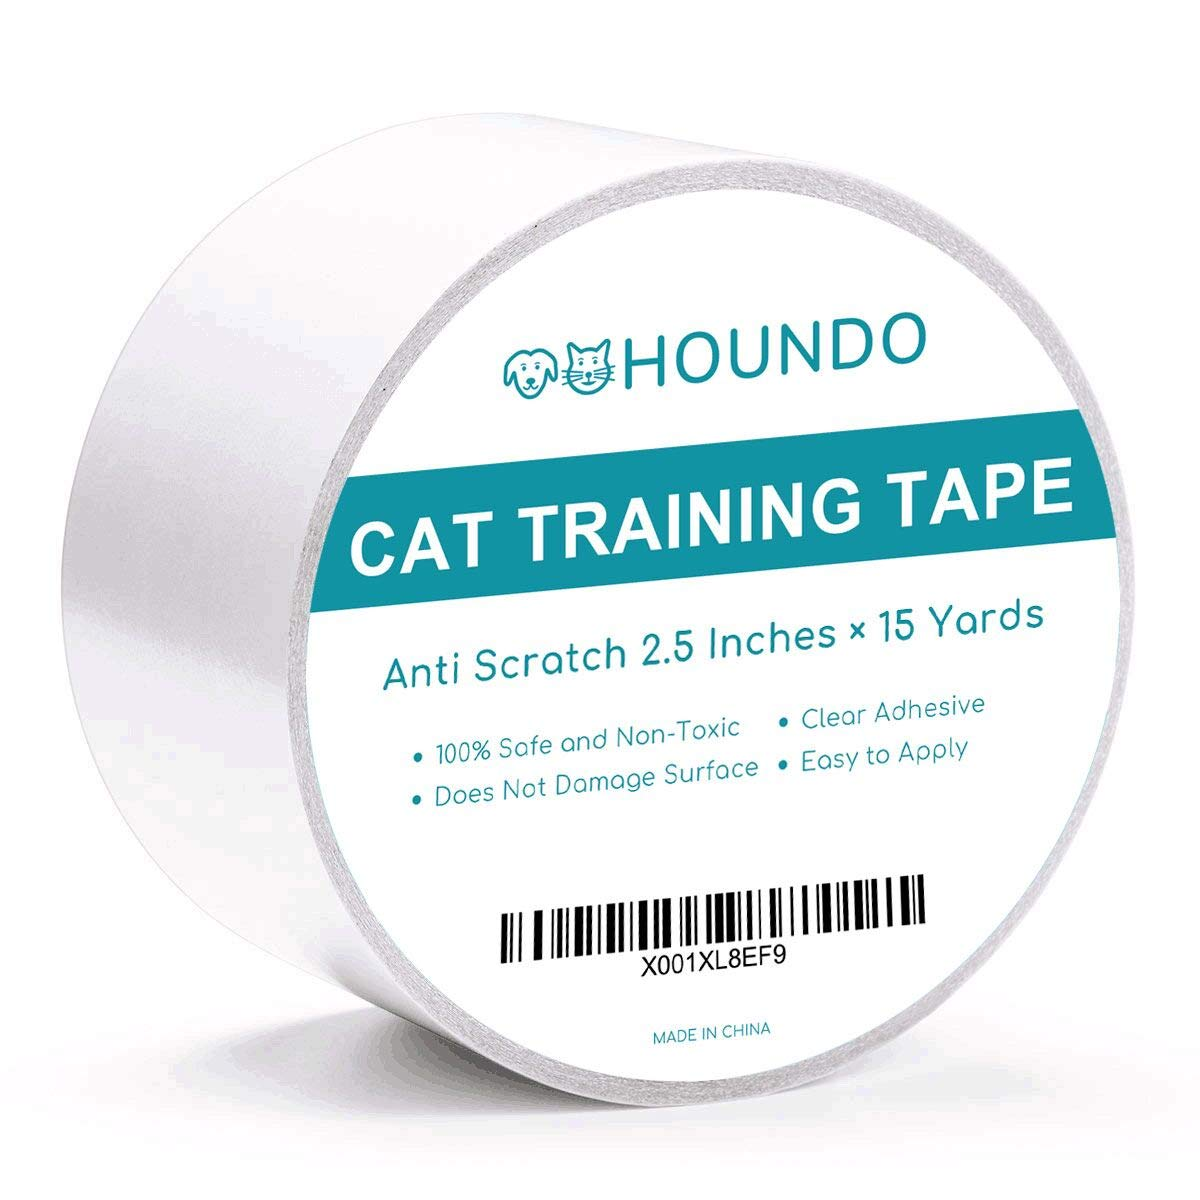 Anti-Scratch Cat Training Tape, 100% Transparent Clear Double Sided Cat Scratch Deterrent Tape – Quickly Stop and…